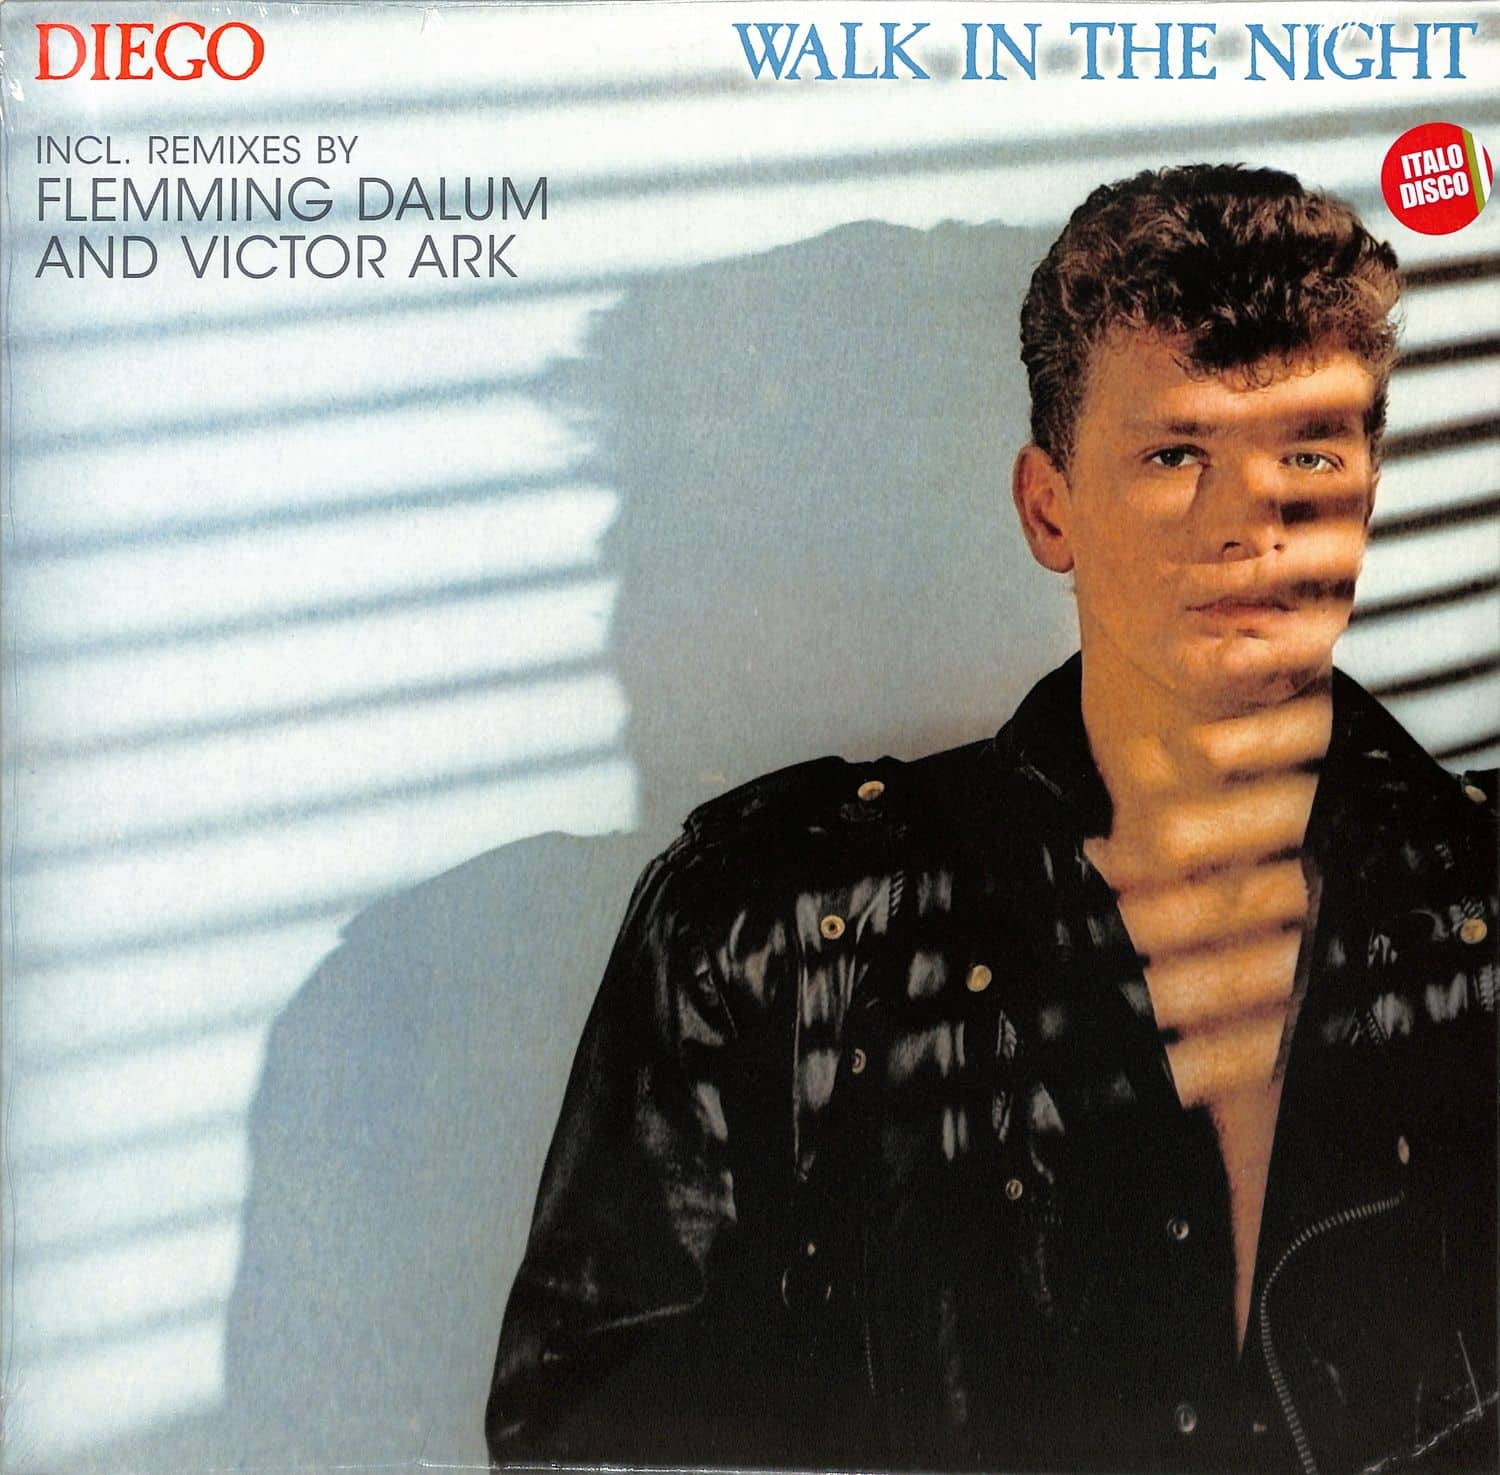 Diego - WALK IN THE NIGHT